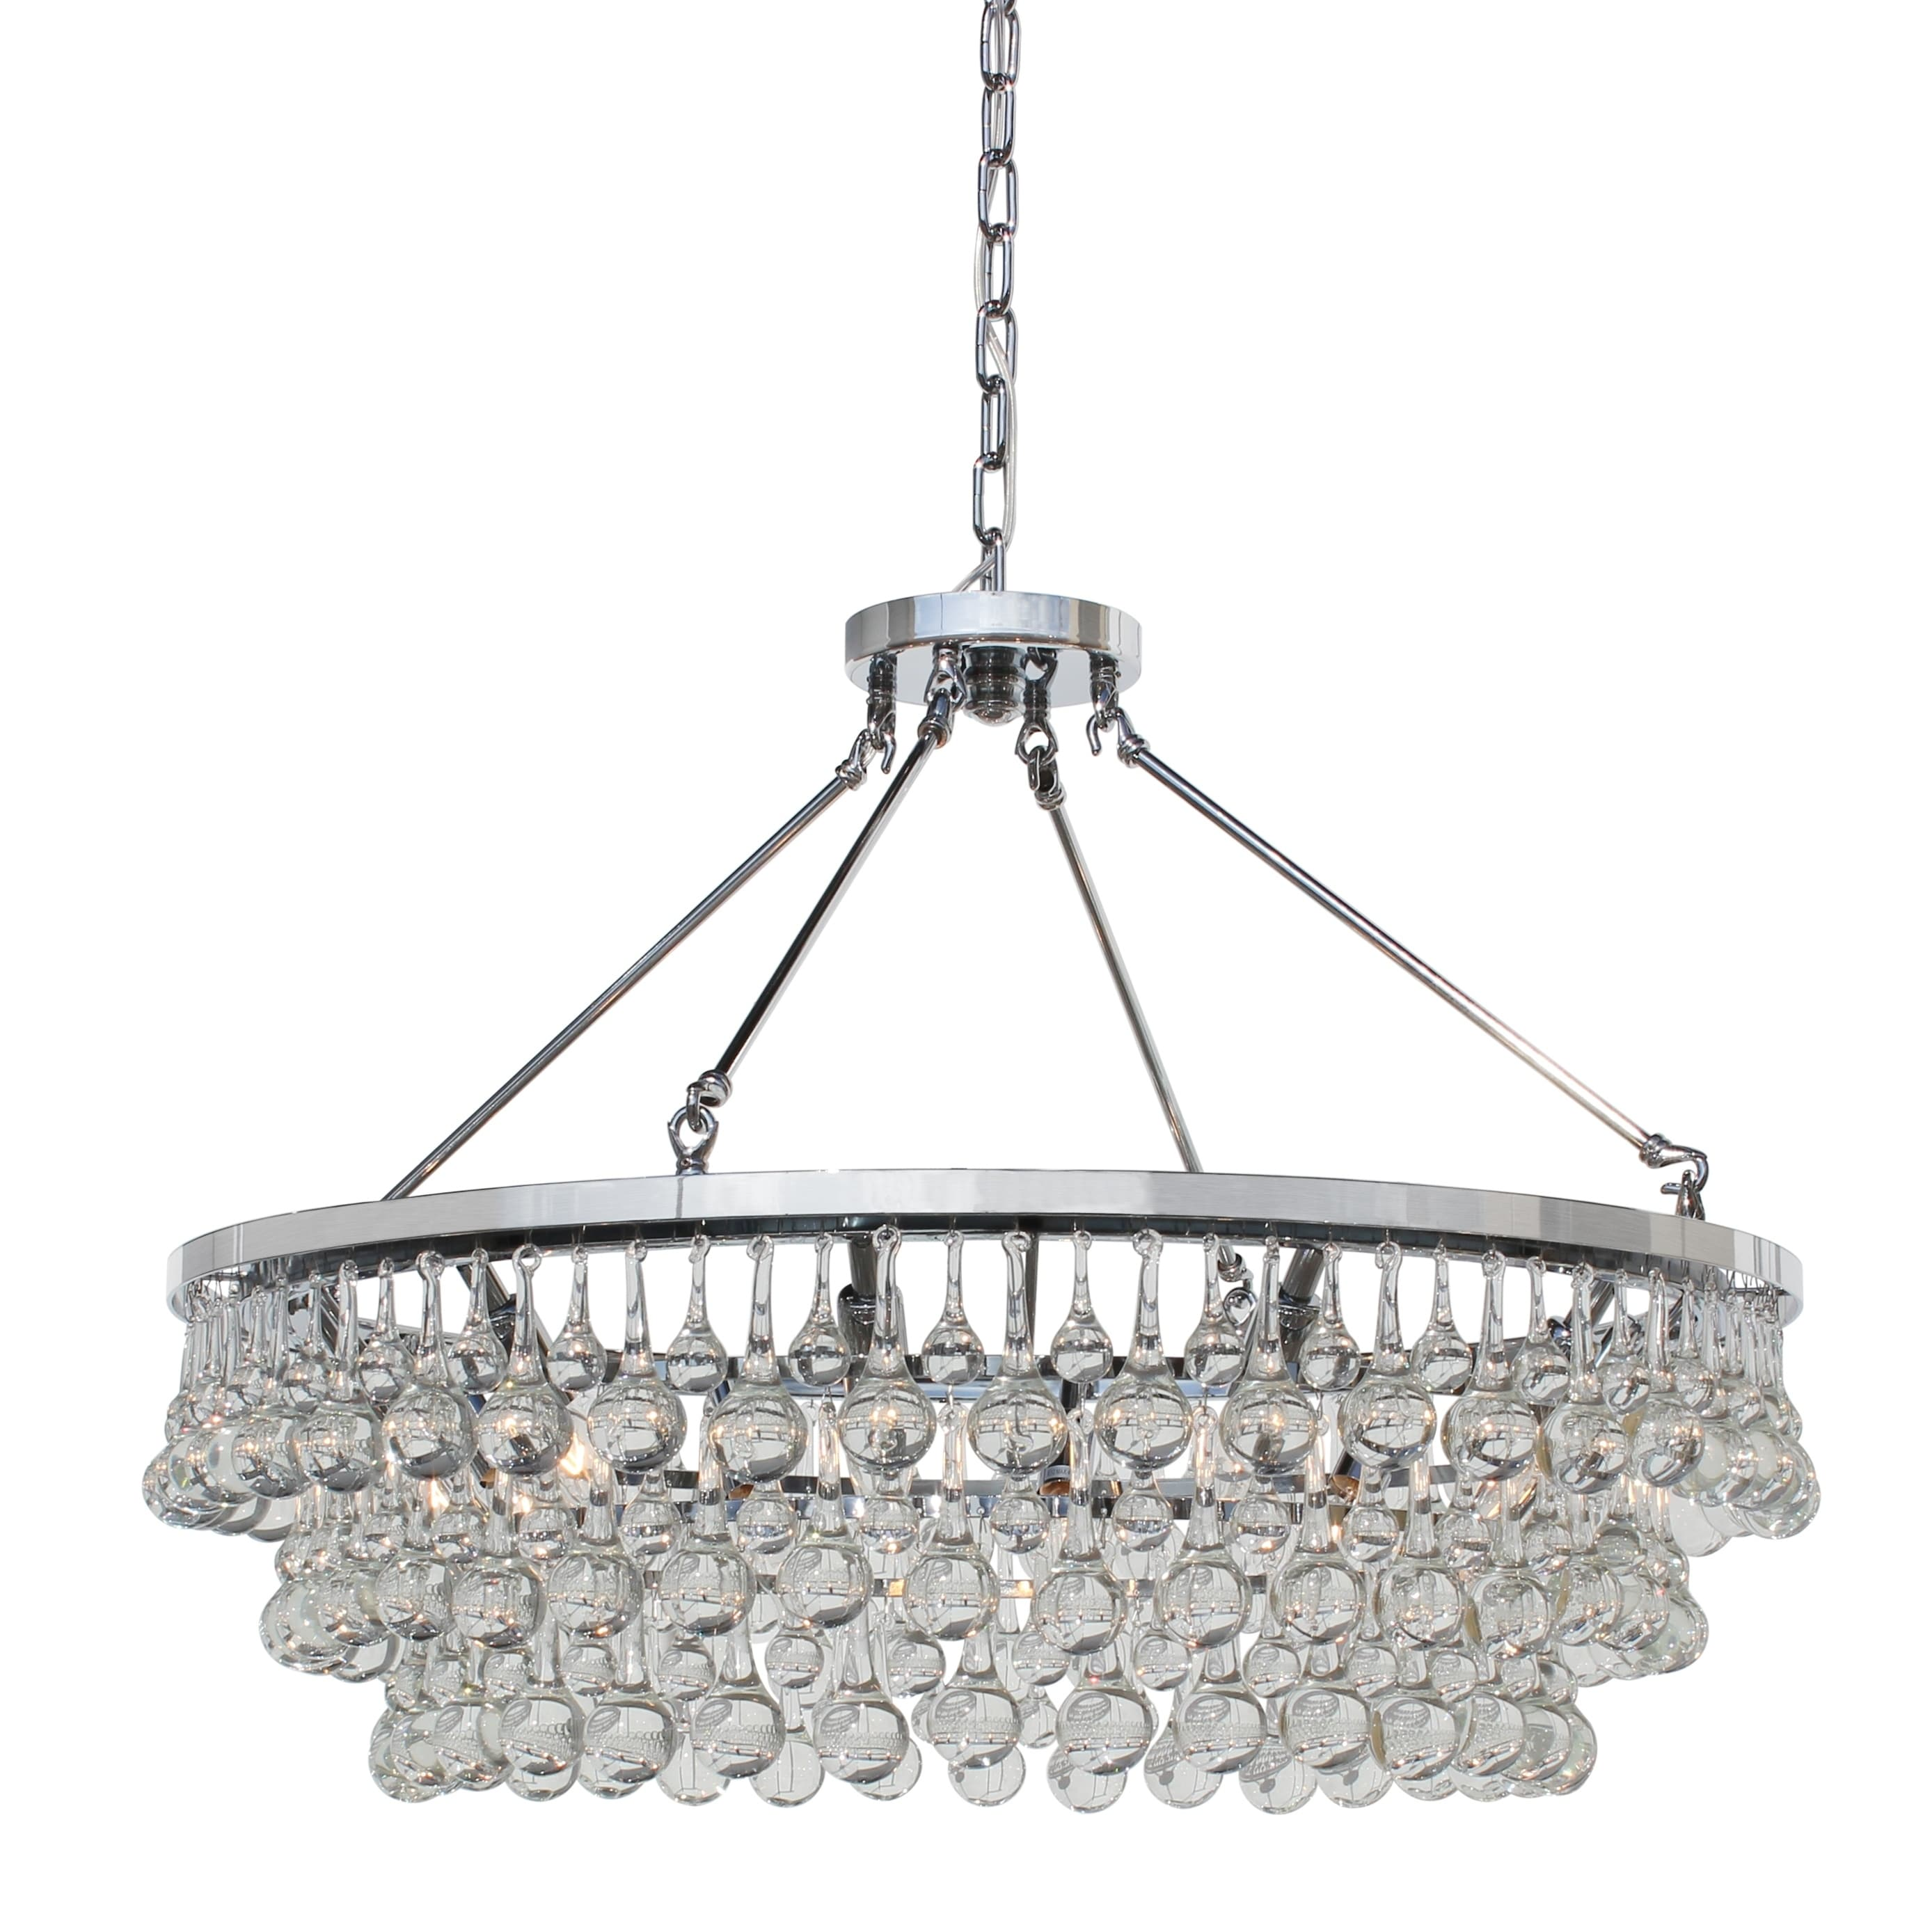 Celeste 10 Light Gl And Crystal Chrome Chandelier On Free Shipping Today 10043379